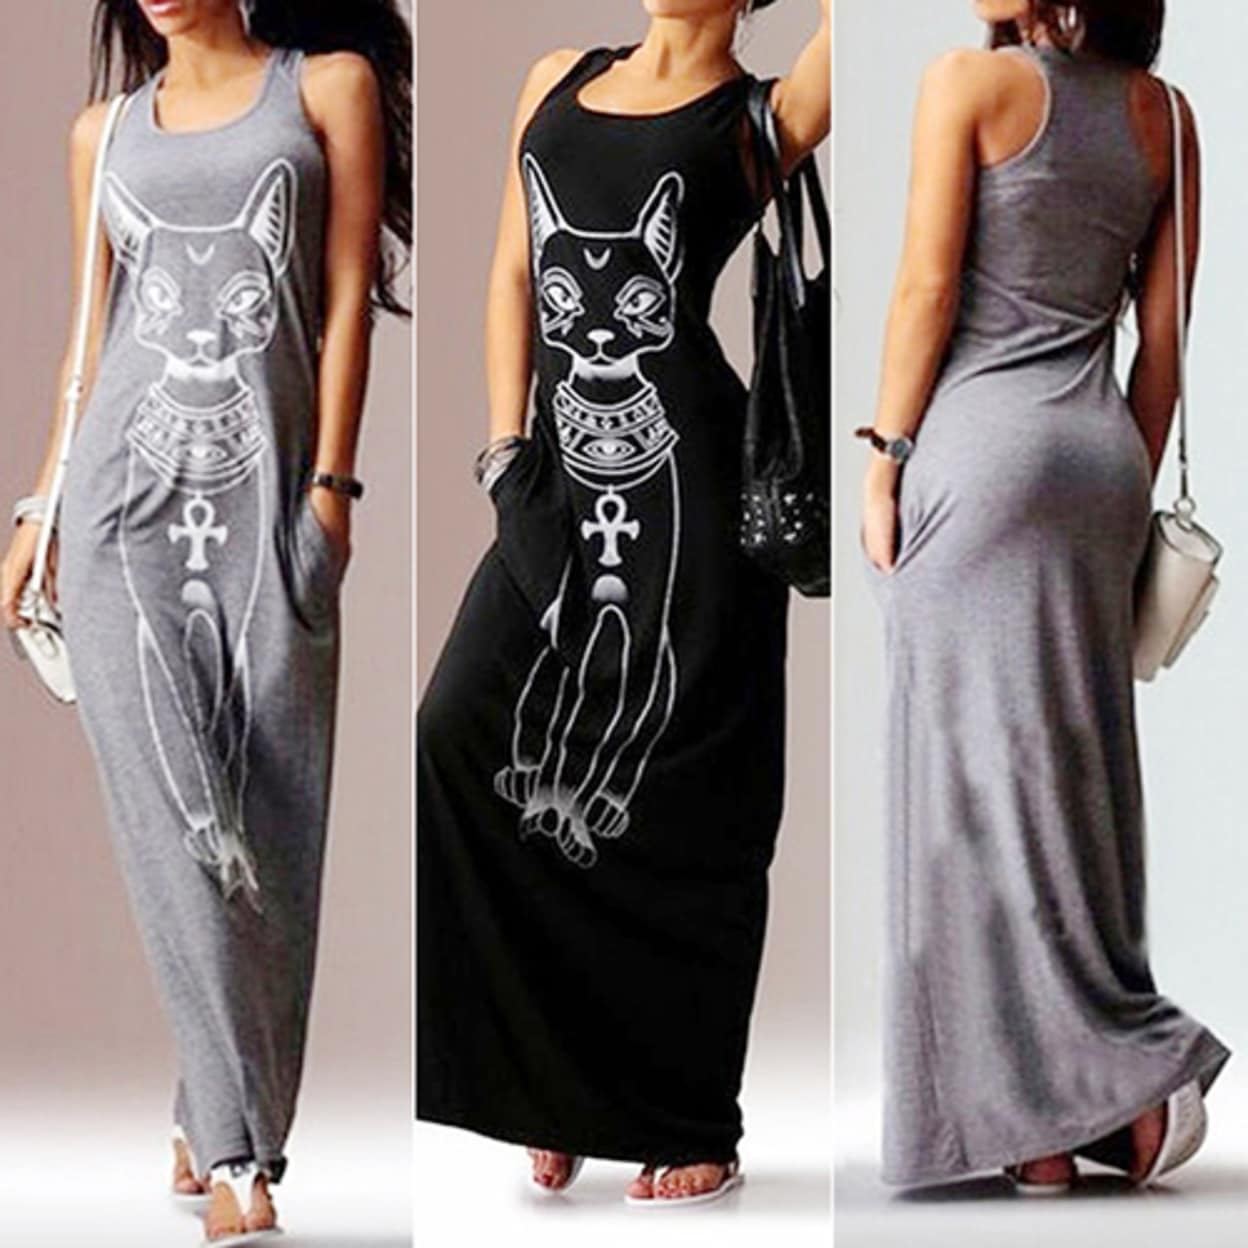 3141457d56 Shop Women's Summer Sexy Casual Boho Long Maxi Party Beach Dress Vest  Sundress - Free Shipping On Orders Over $45 - Overstock - 23018265